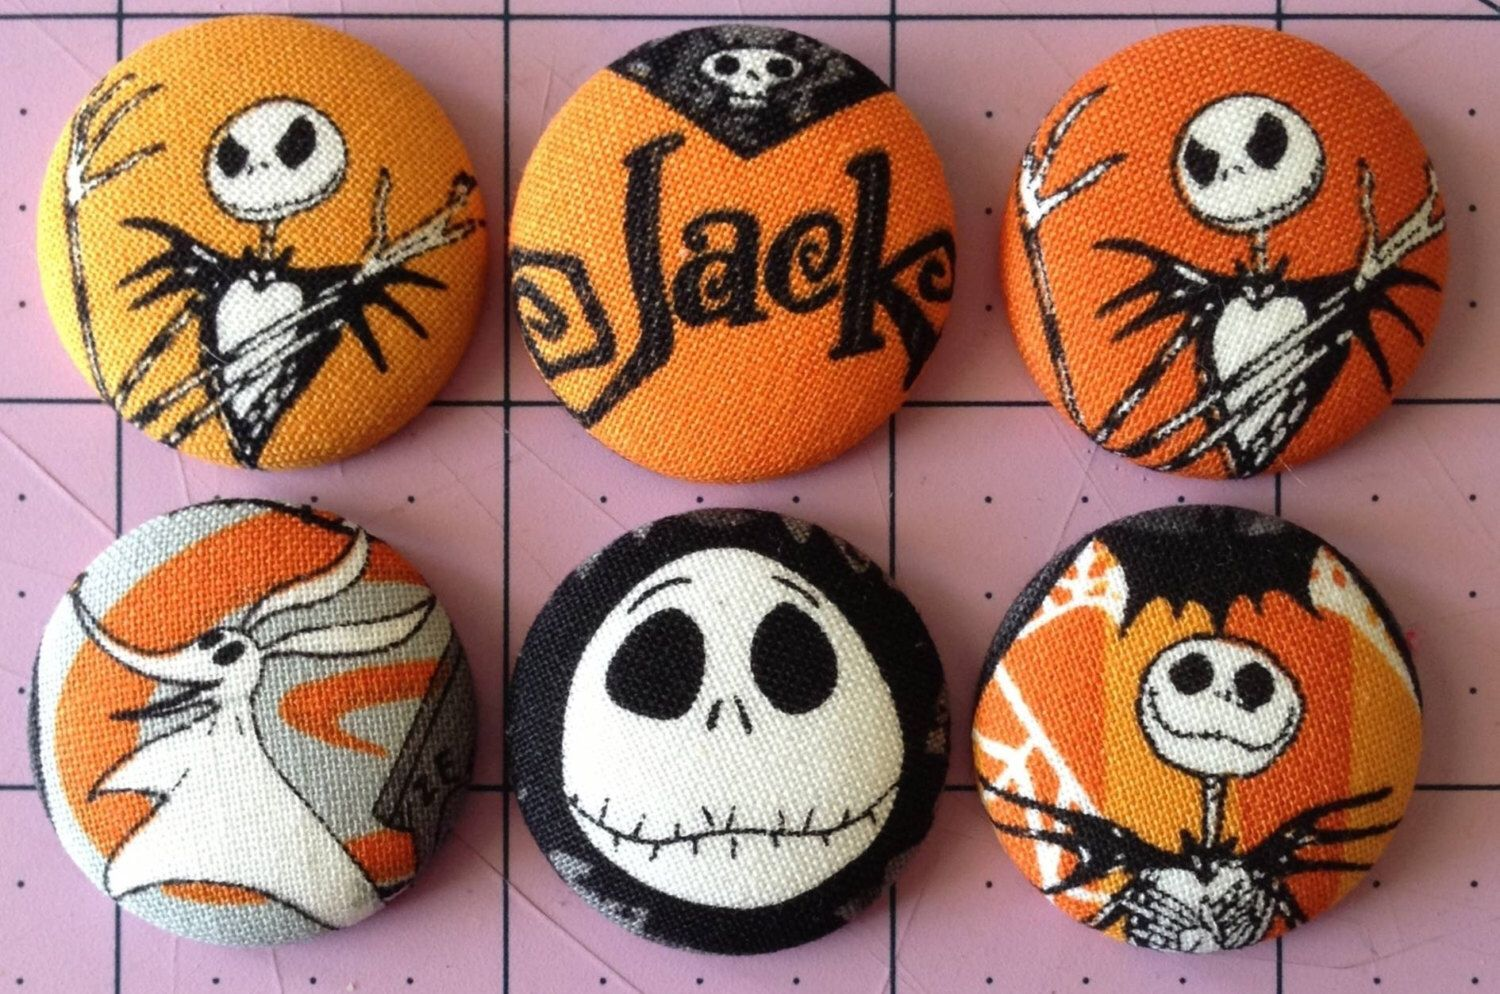 """The Nightmare Before Christmas magnets - NMBC - large 1 1/8"""" - 6 magnets set - strong magnets - cartoon magnets - Jack Skellington  https://www.etsy.com/listing/251992331/the-nightmare-before-christmas-magnets"""